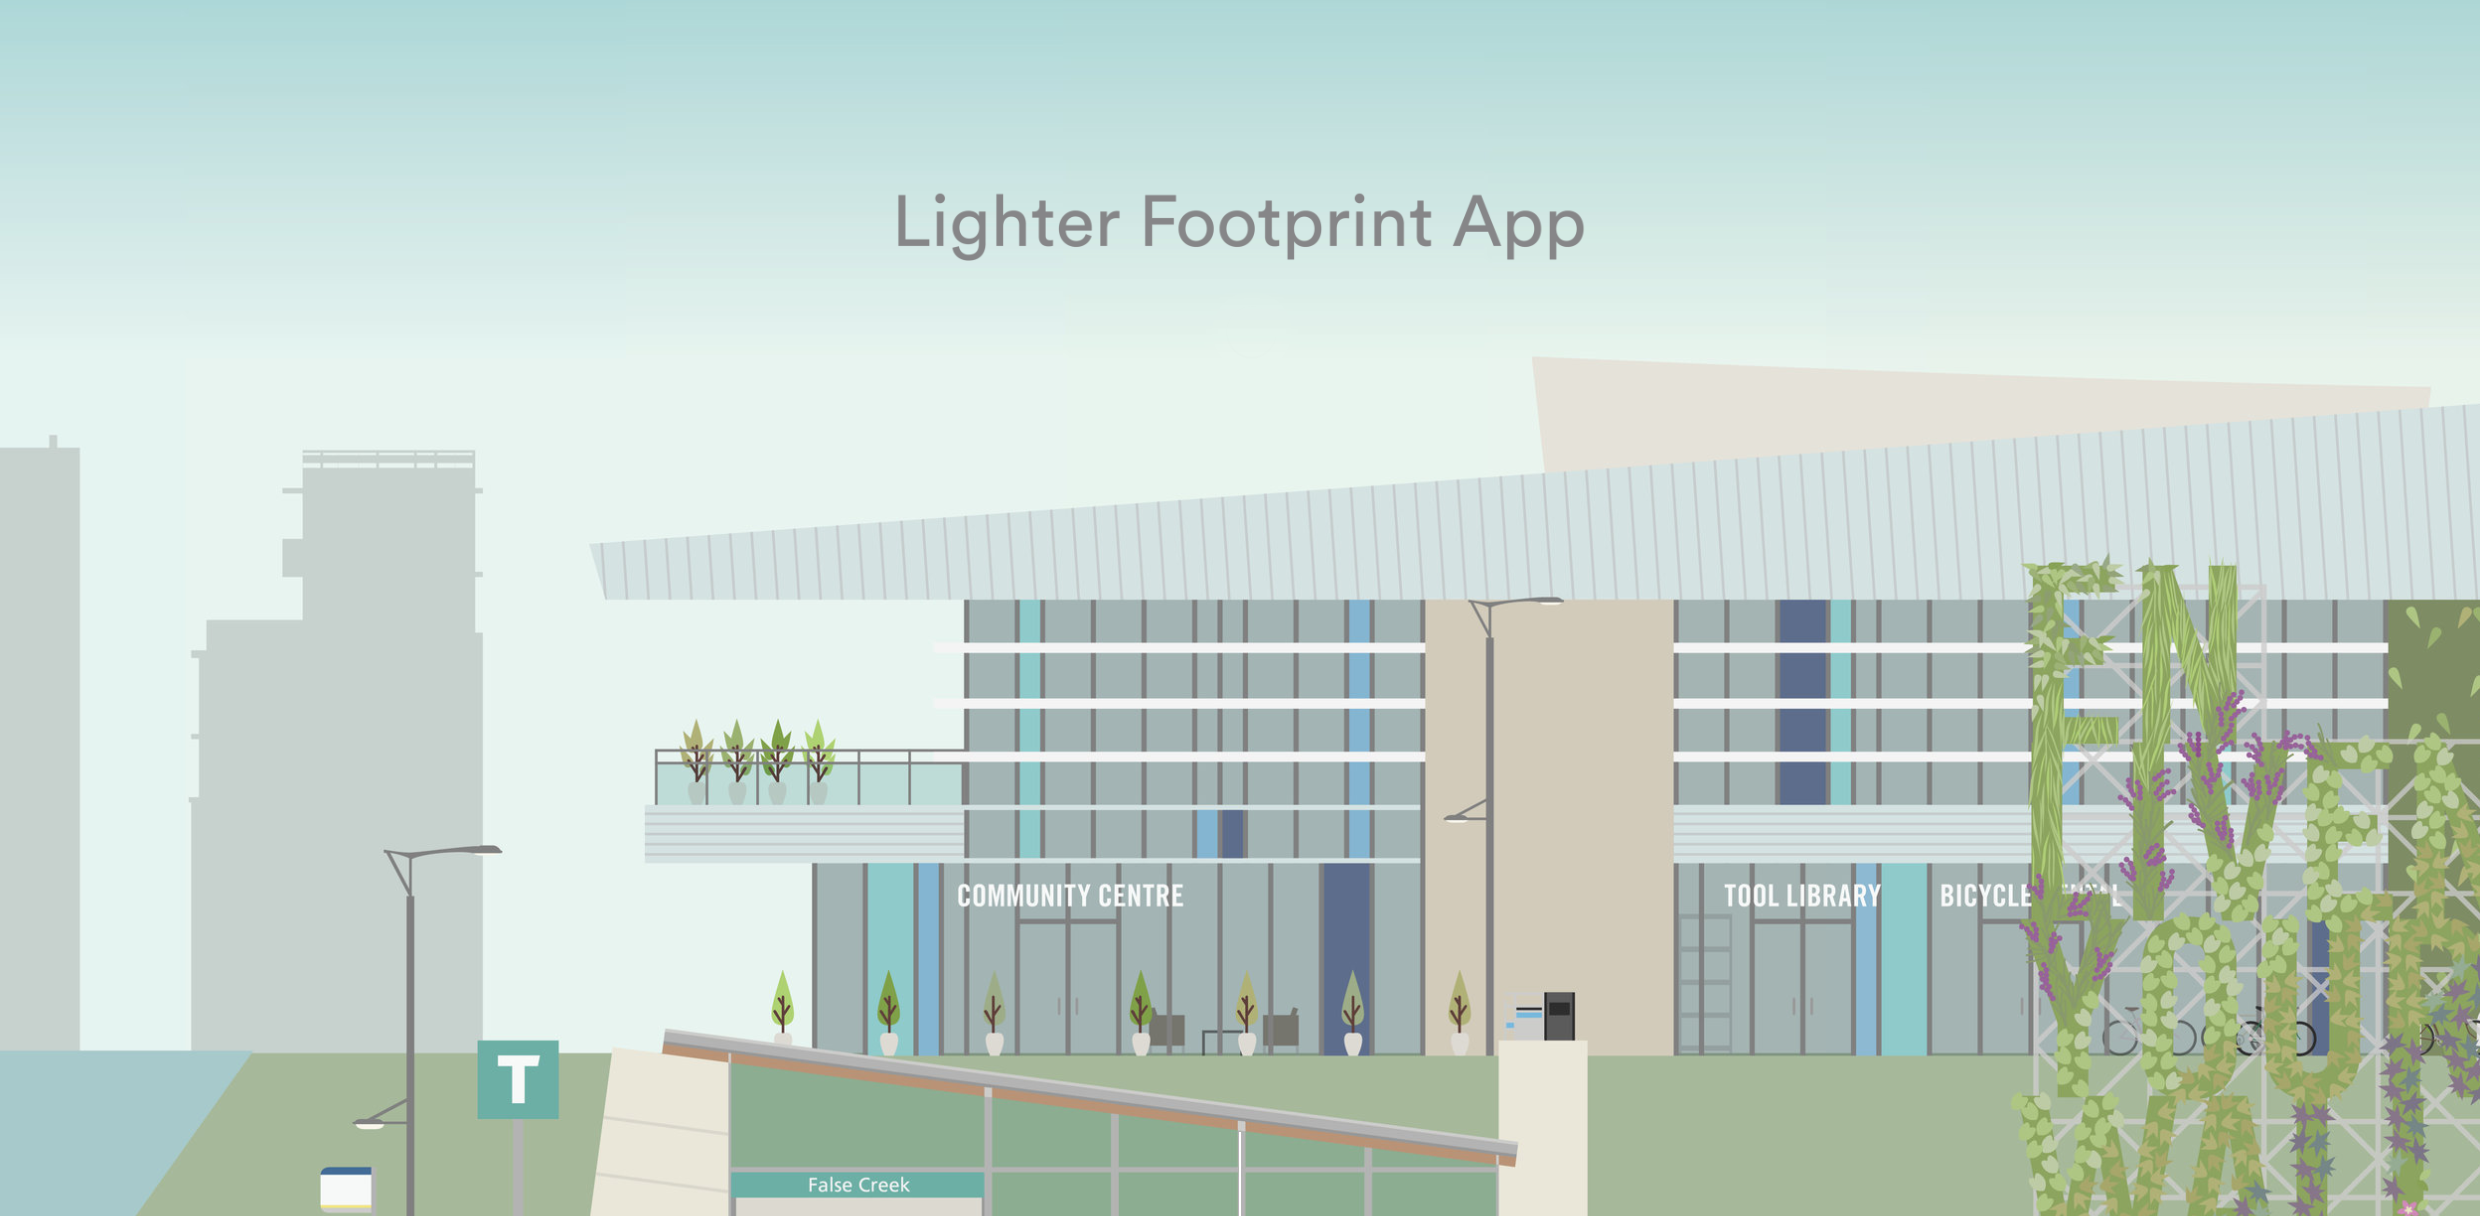 Lighter Footprint App_Etho Studio.png